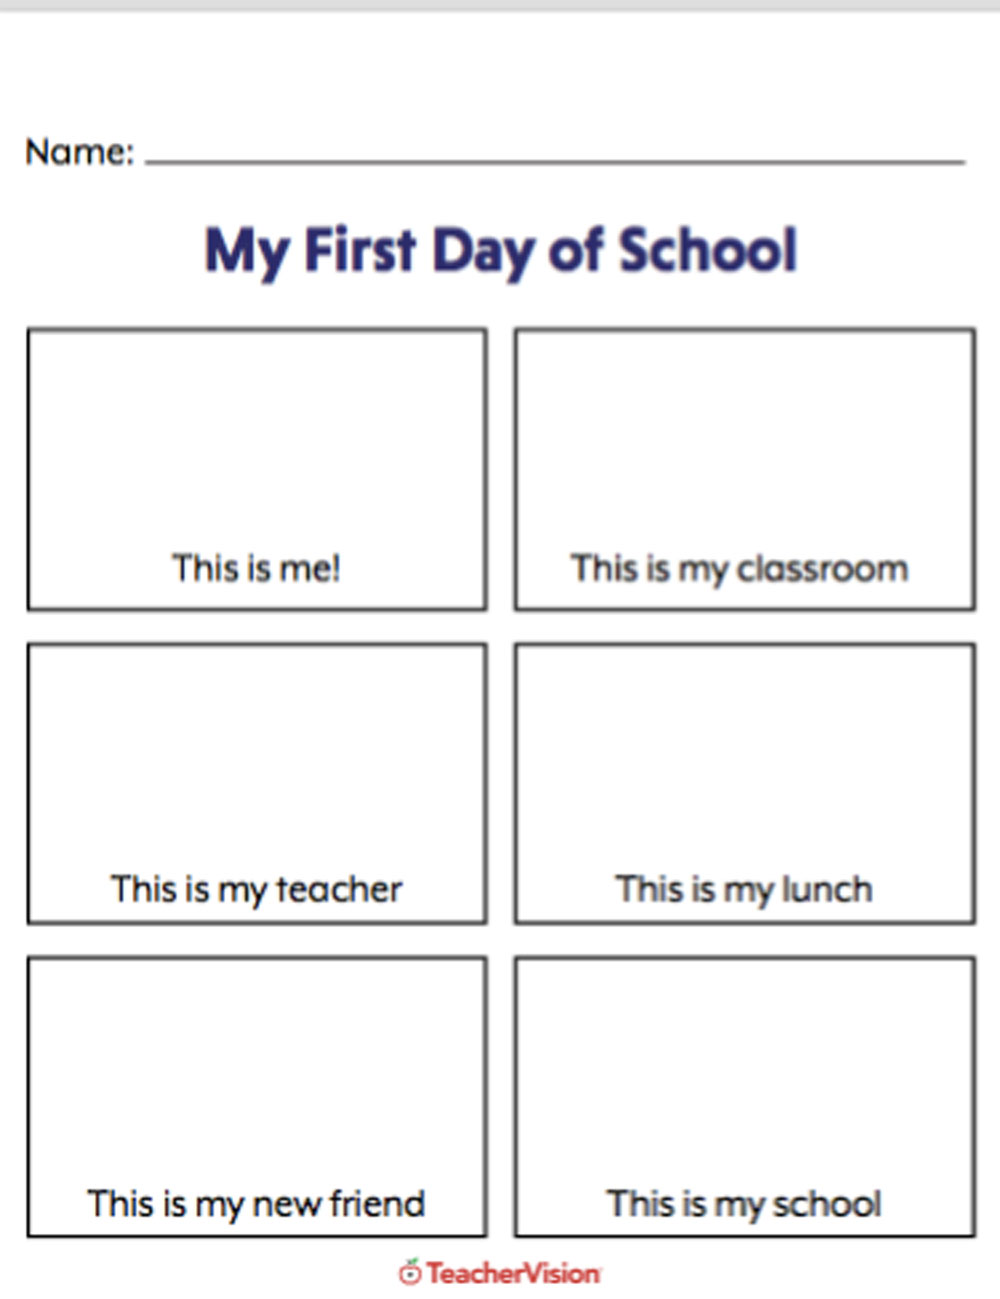 medium resolution of My First Day of School Picture Activity - TeacherVision